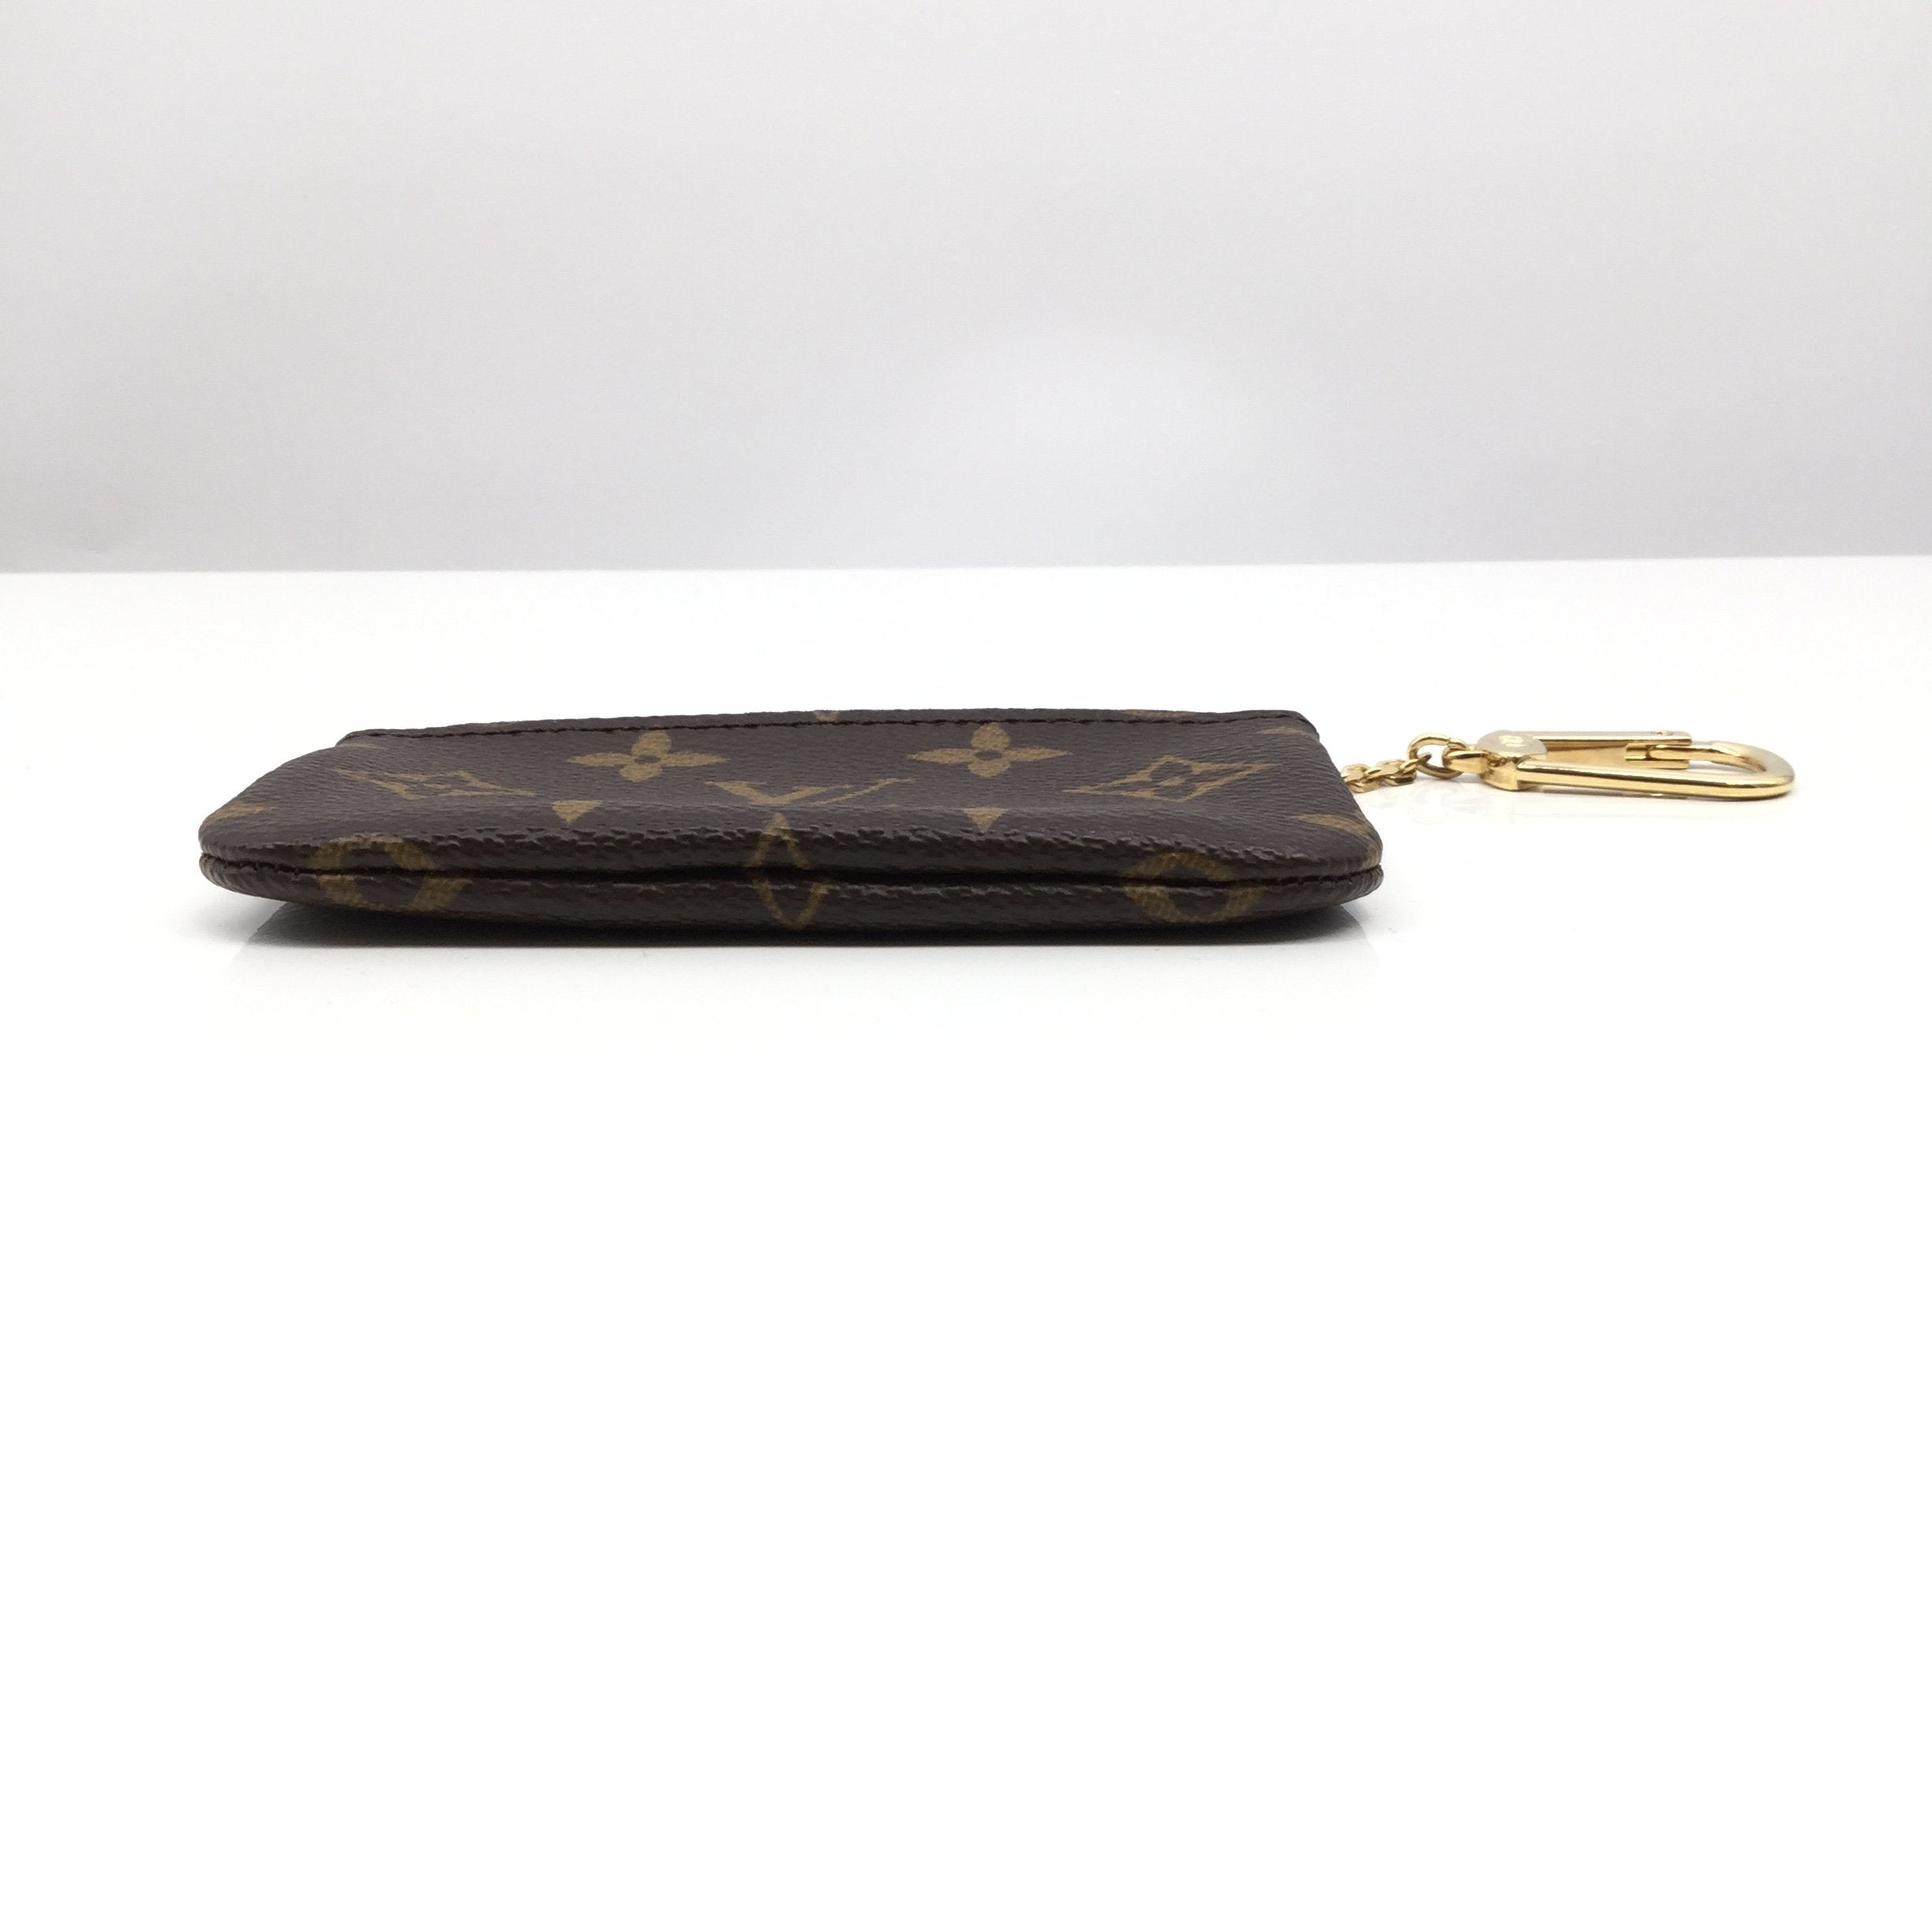 Louis Vuitton Coin Purse - <P>SMALL LIKE NEW LOUIS VUITTON COIN PURSE. TAN AND CHOCOLATE BROWN WITH GOLD HARDWARE. CA2039</P>